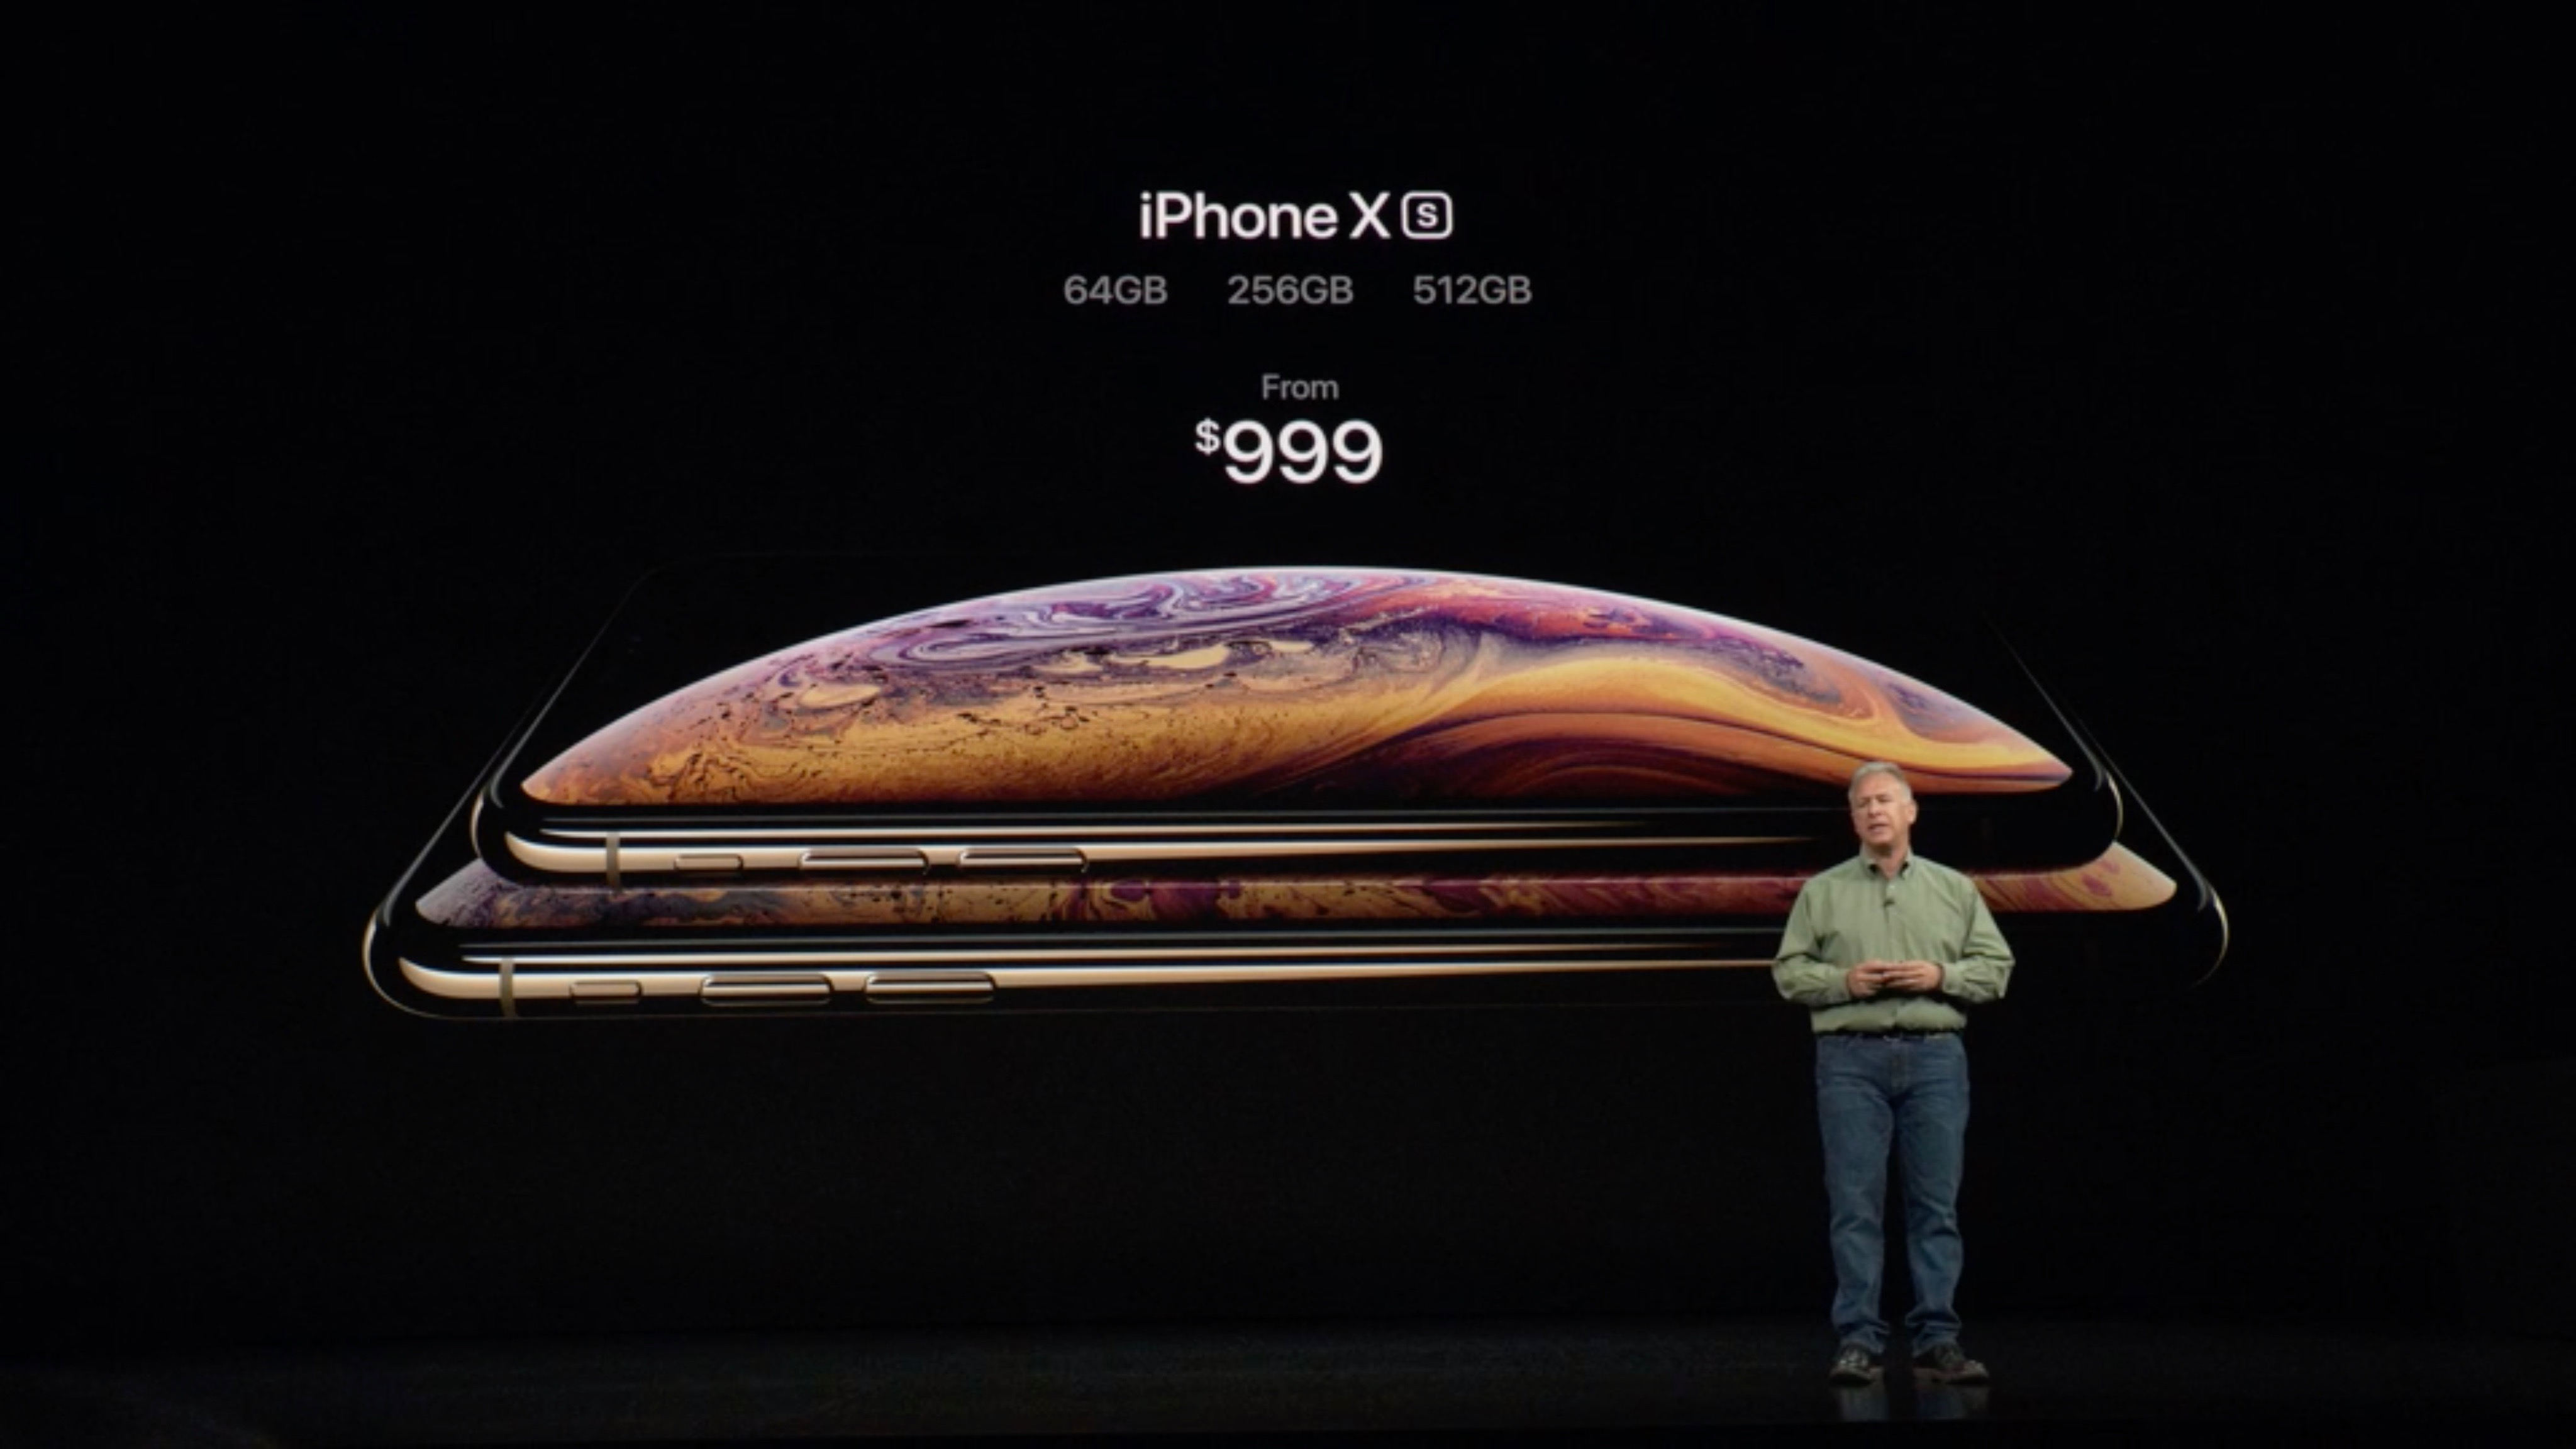 iPhone XS, iPhone XS Max, and Apple Watch Series 4 now available for pre-order